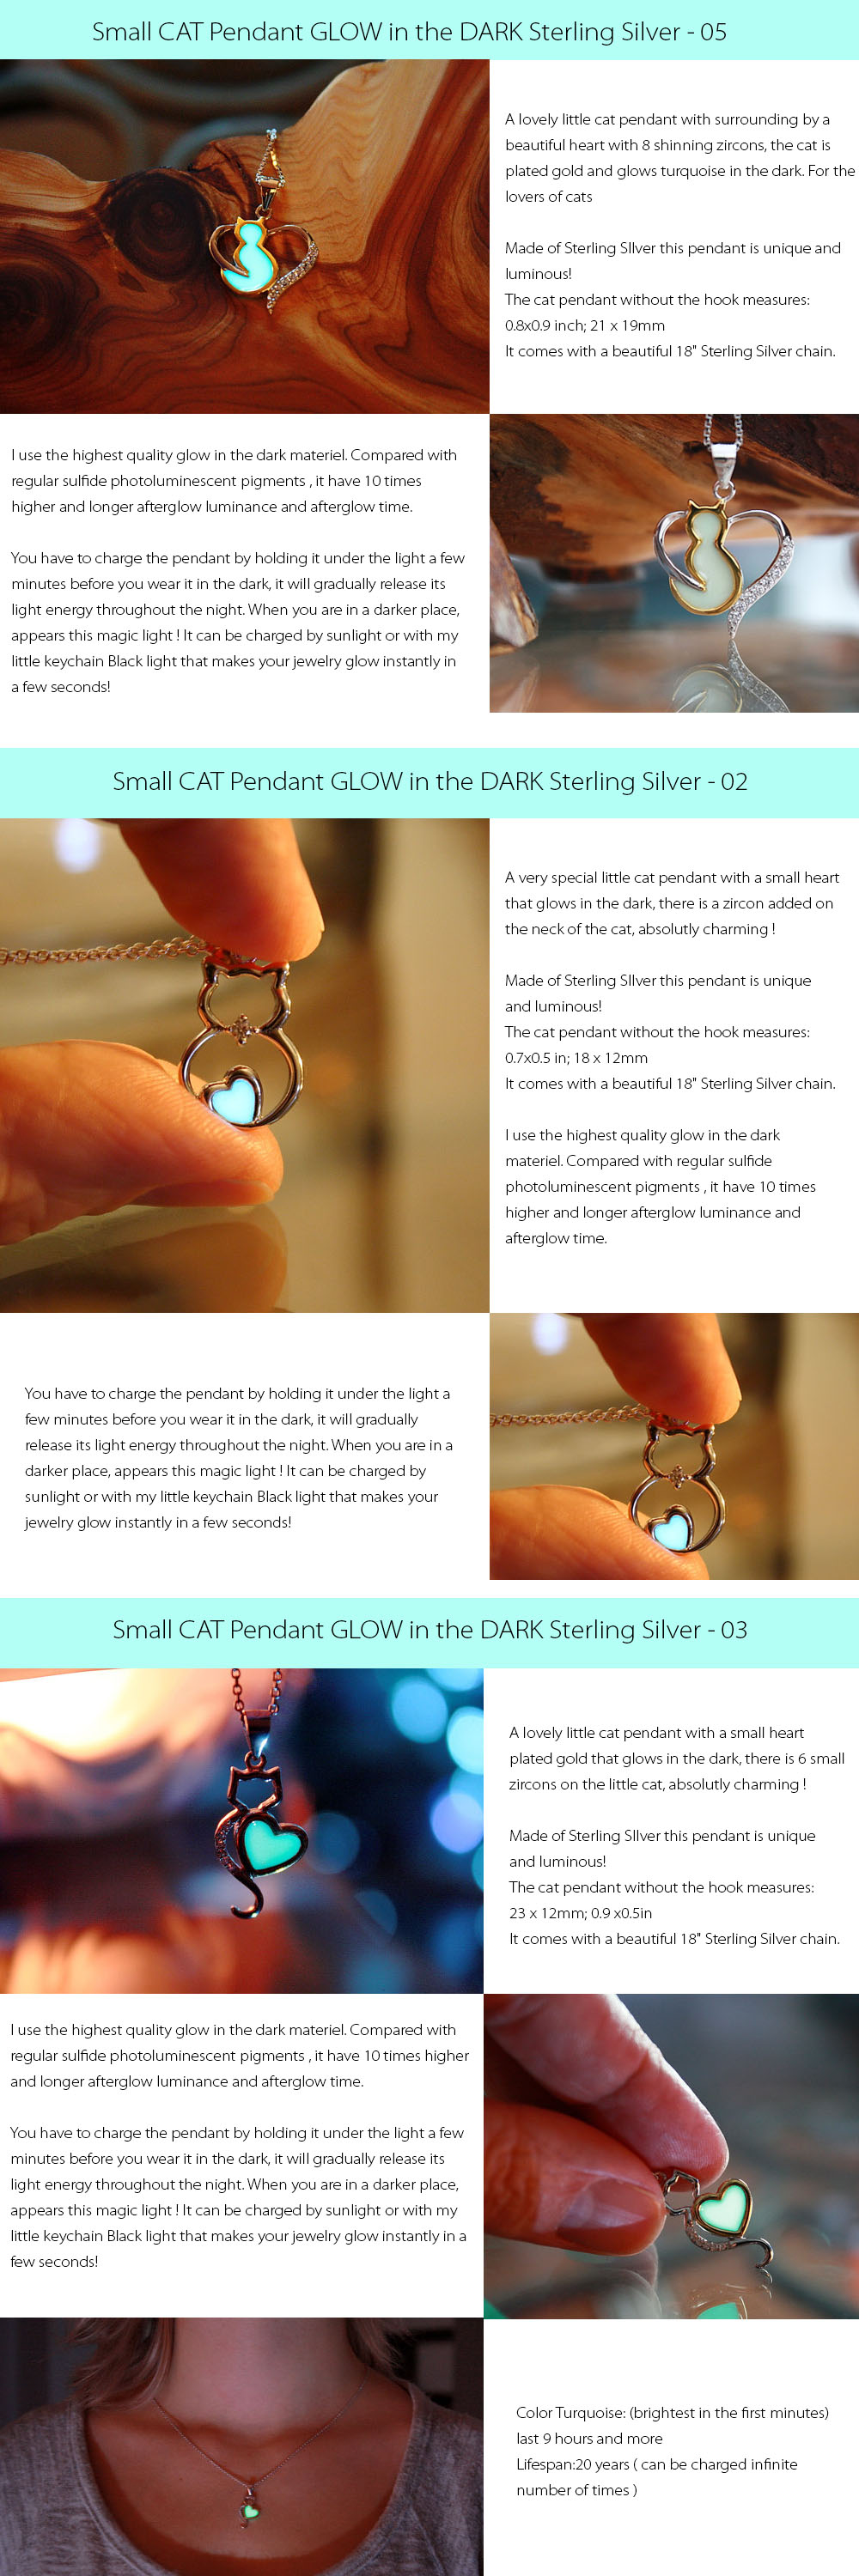 Small CAT Pendant GLOW Small CAT Pendant GLOW